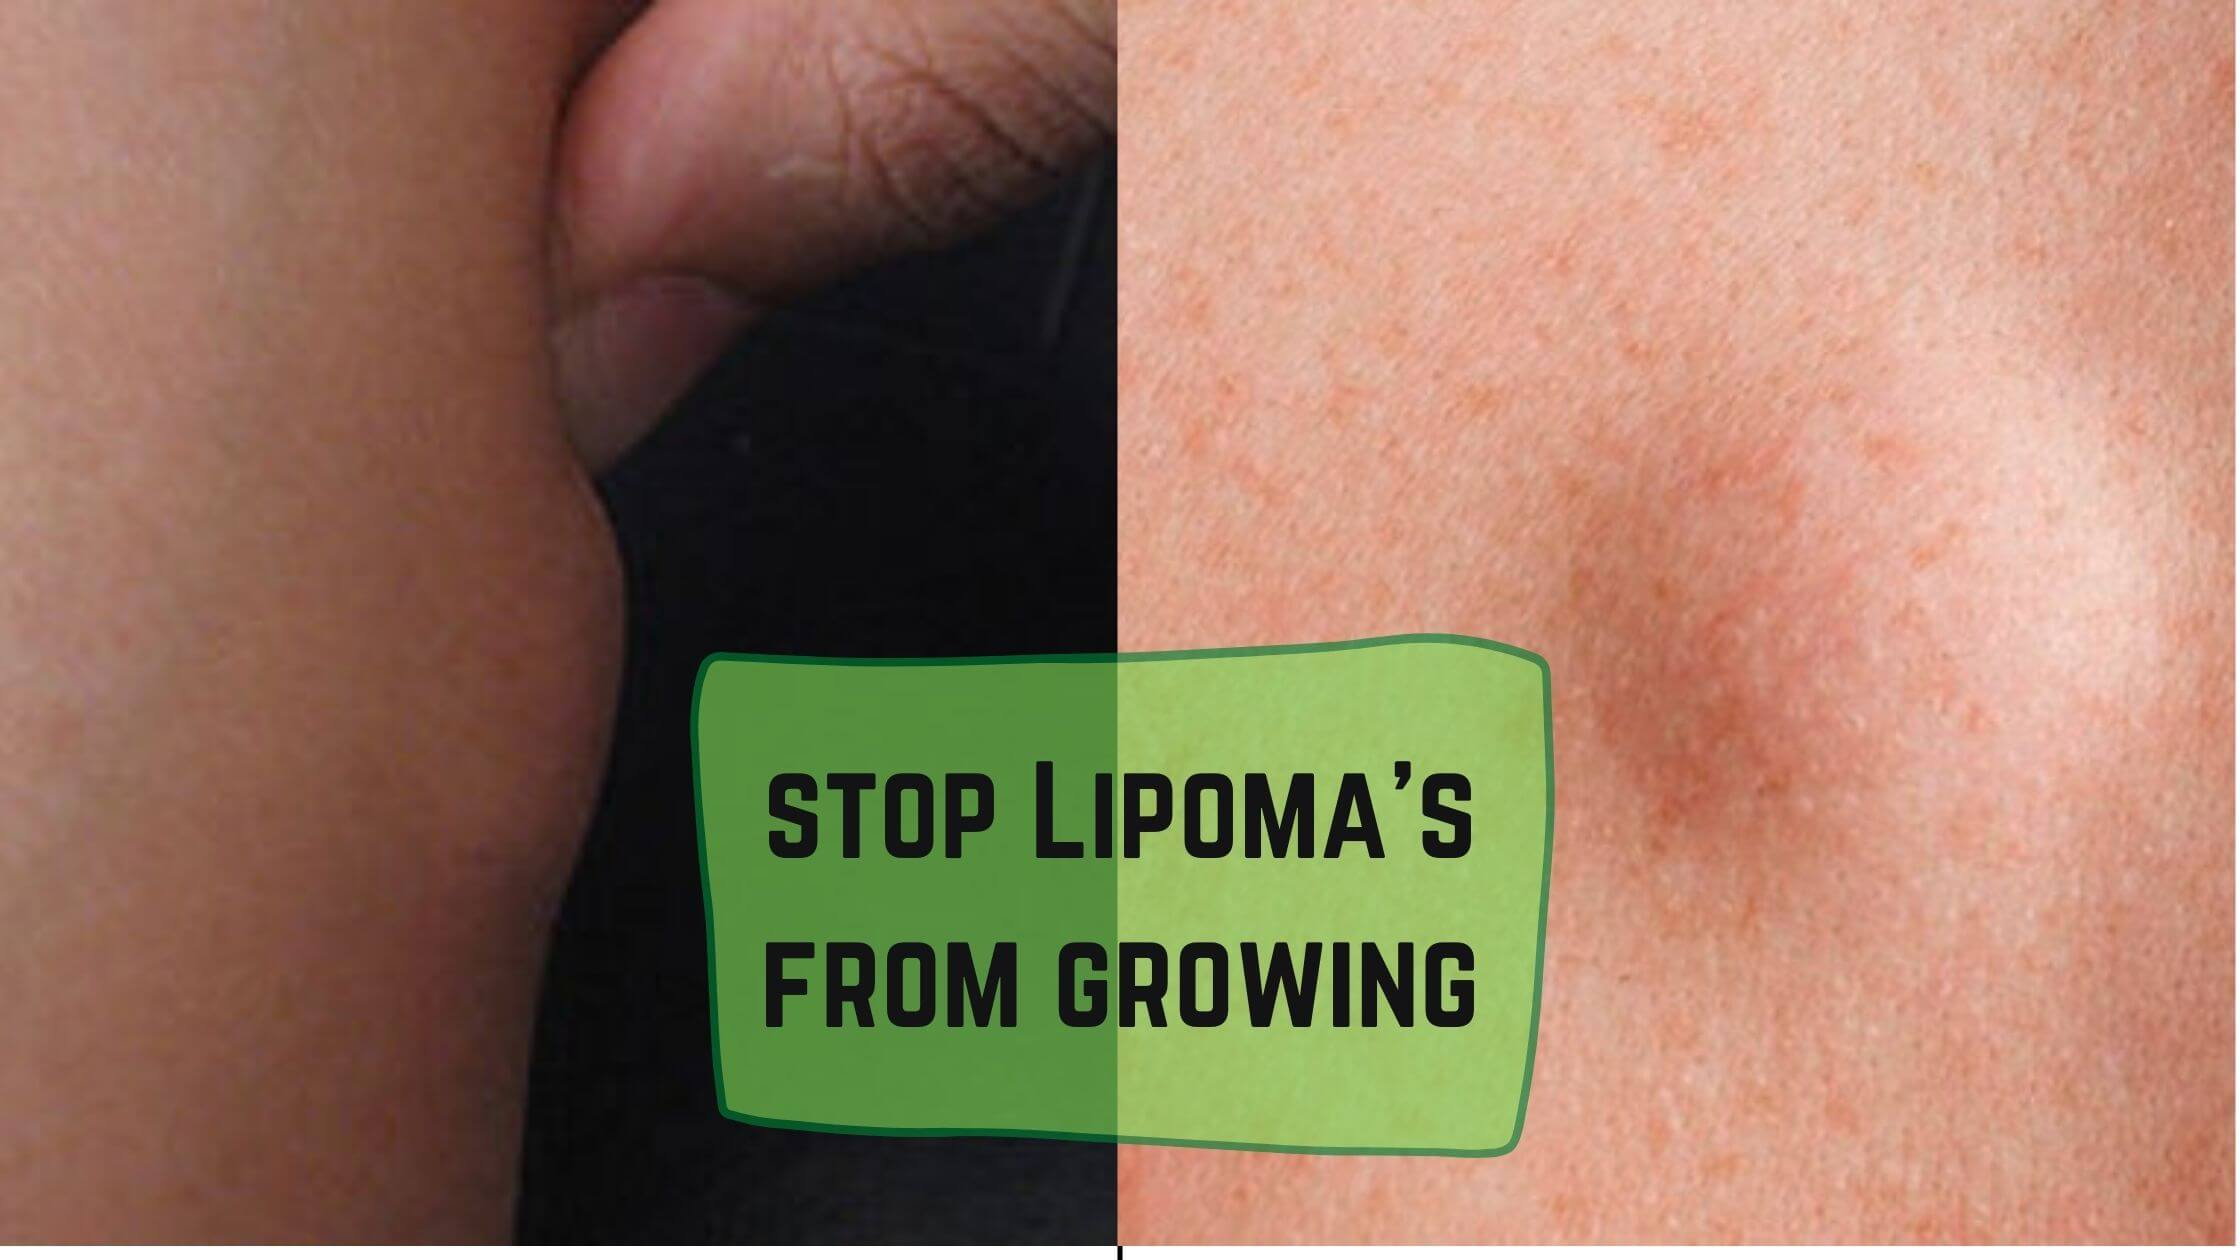 How do you stop Lipoma's from growing?